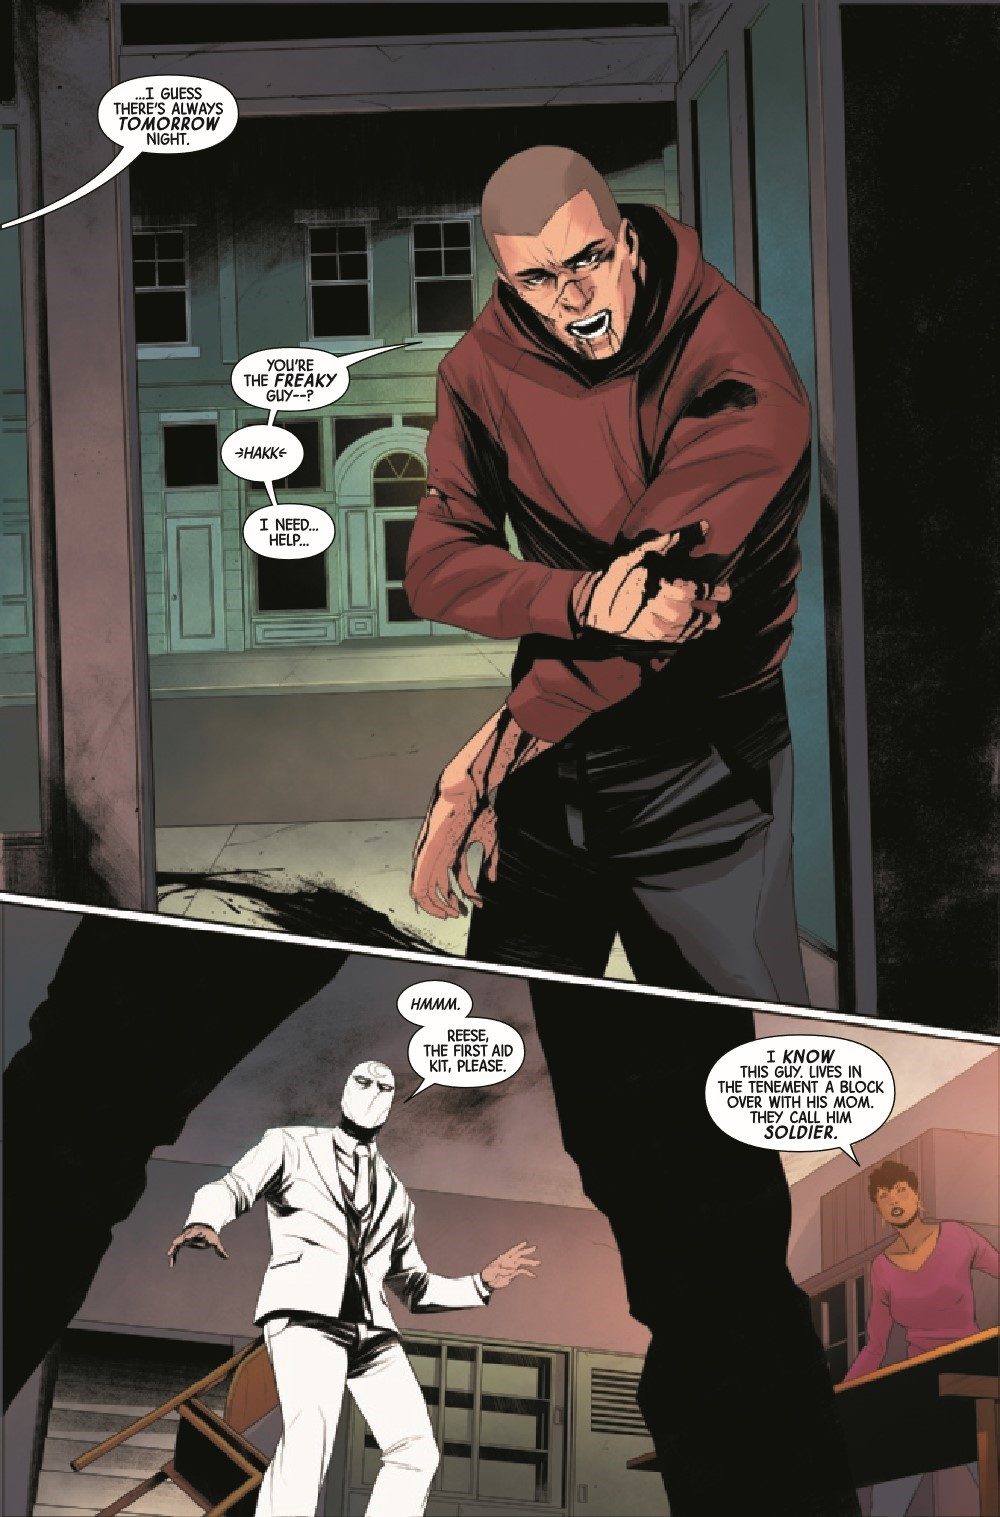 MOONKN2021002_Preview-5 ComicList Previews: MOON KNIGHT #2